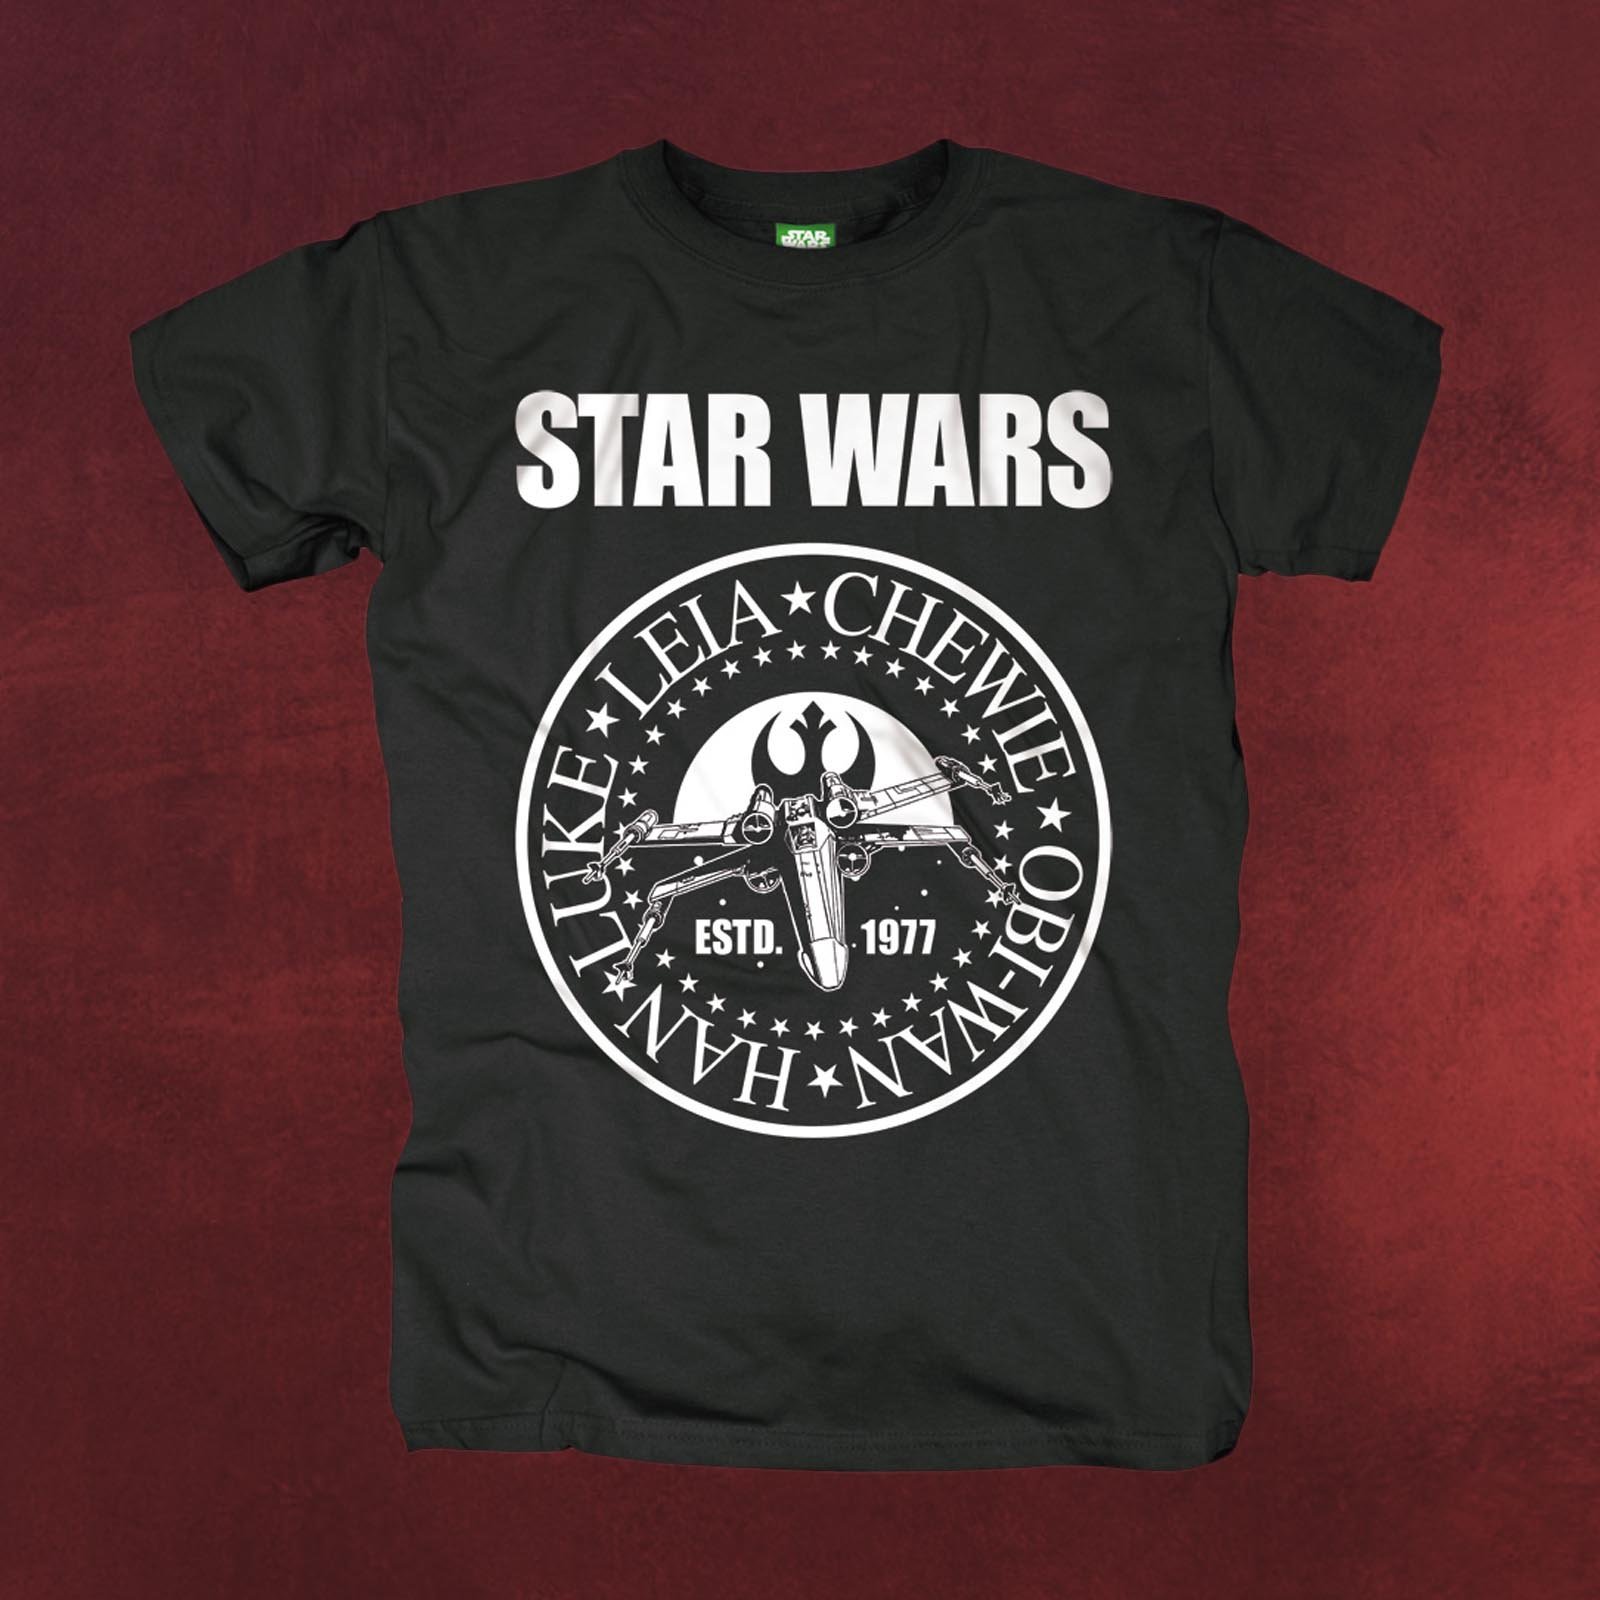 star wars seal t shirt mit luke skywalker leia chewbacca. Black Bedroom Furniture Sets. Home Design Ideas